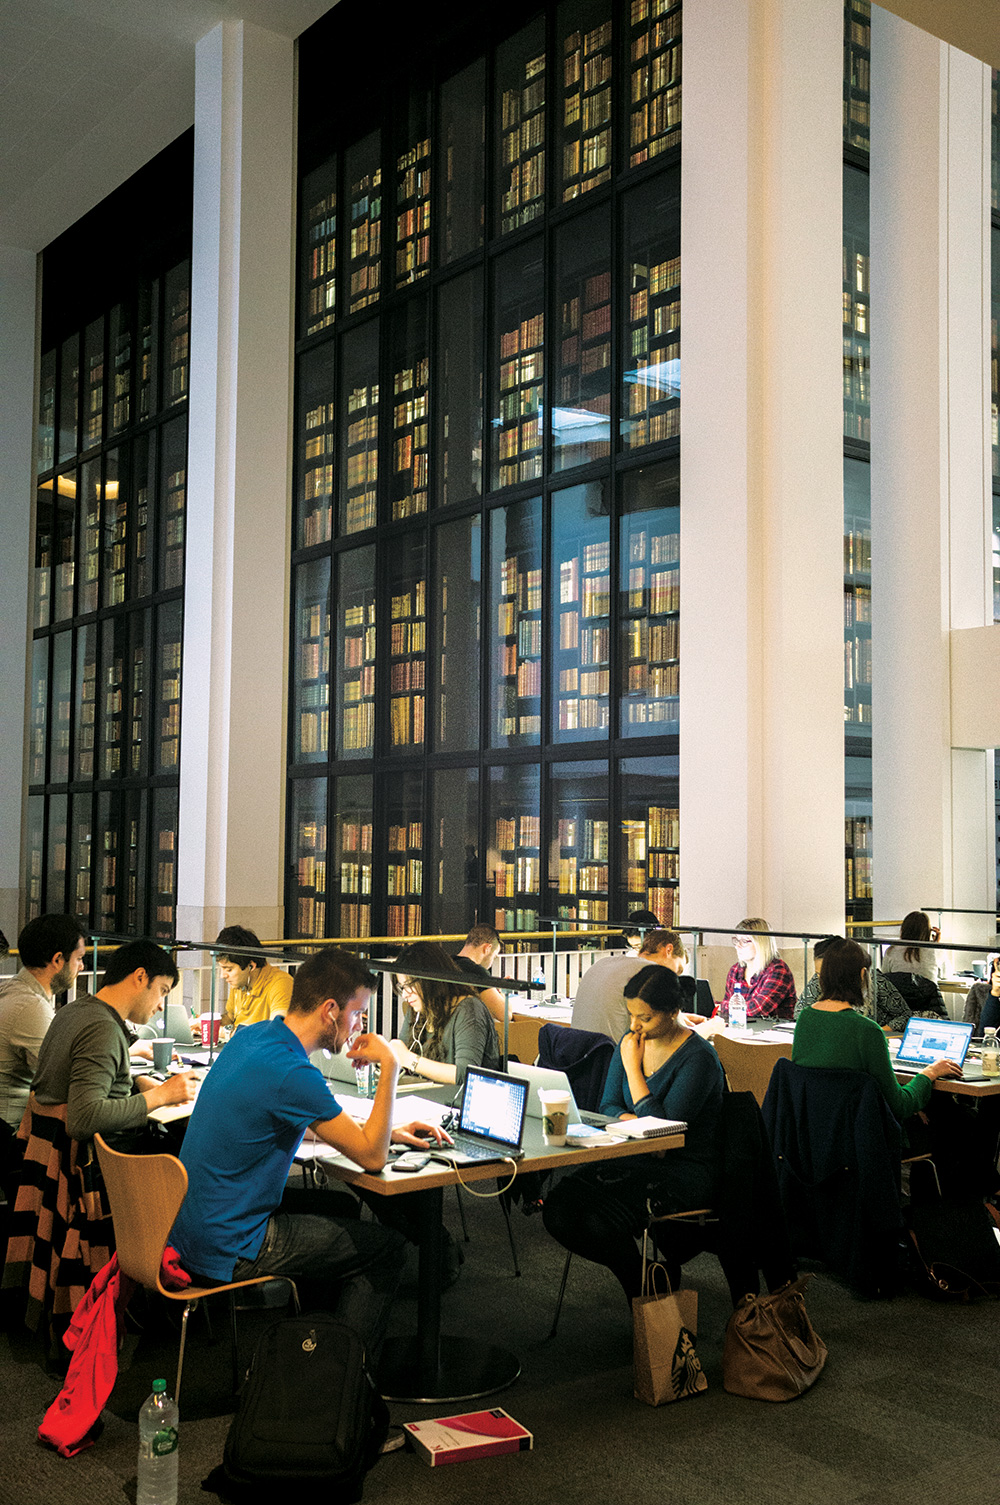 People studying at desks in front of the King's Library inside the British Library.